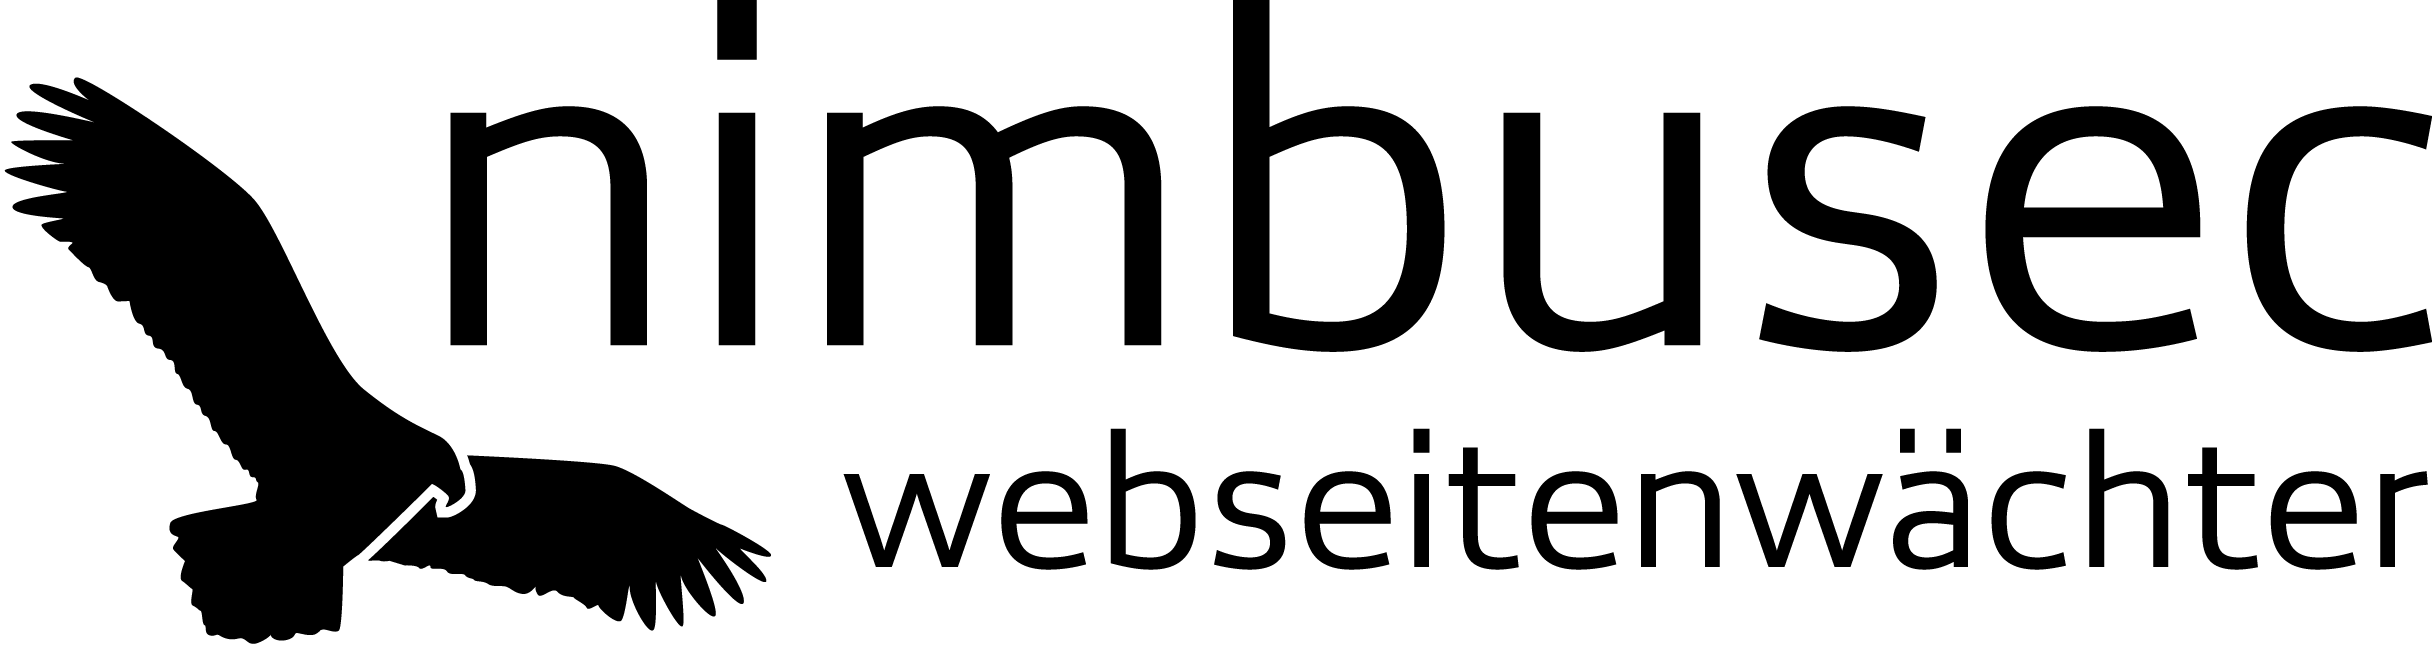 Cumulo Information System Security GmbH